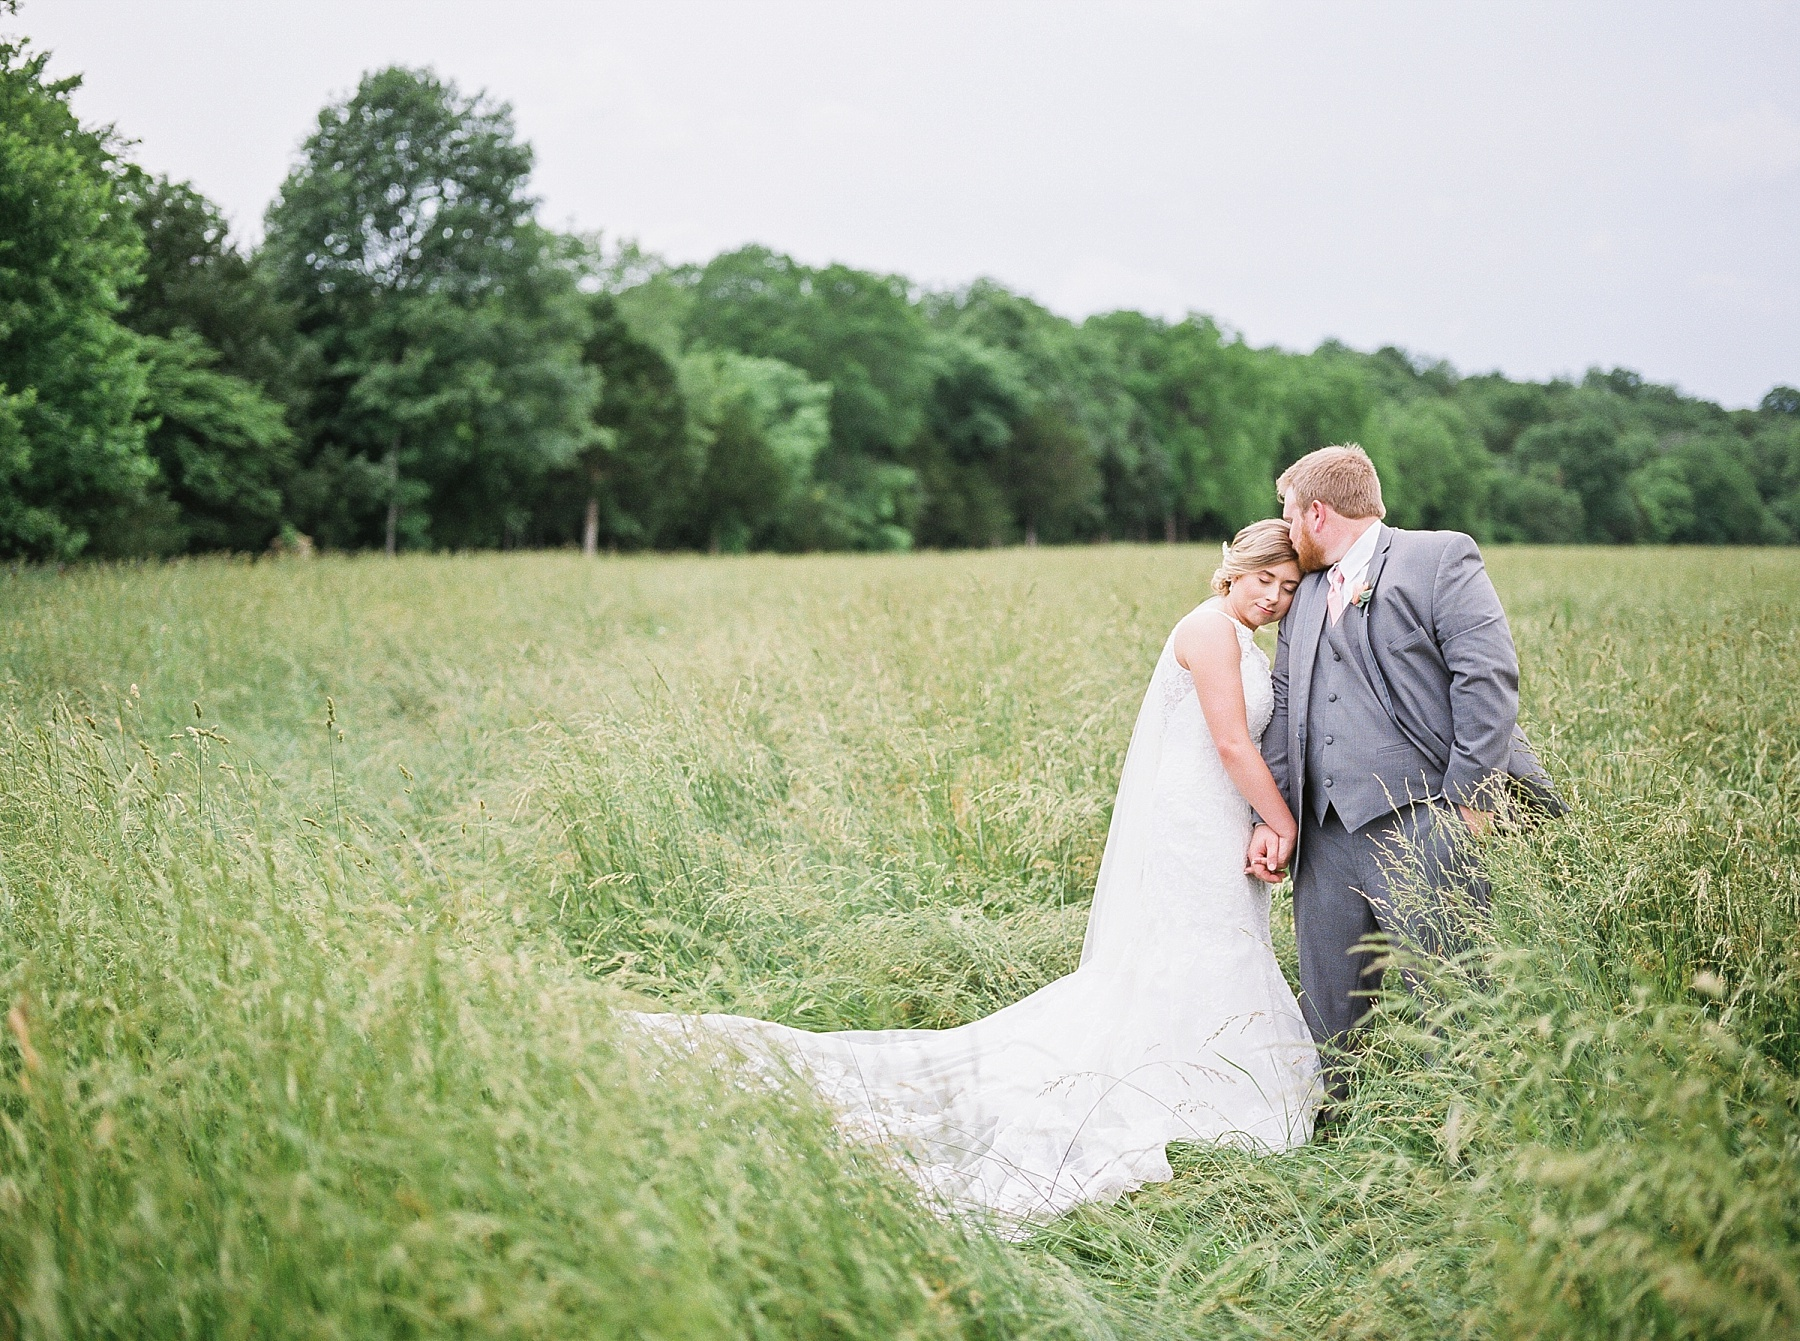 Peach and Dusty Blue Spring Wedding in Rolling Hills of Mid Missouri by Kelsi Kliethermes Photography Best Missouri and Maui Wedding Photographer_0022.jpg